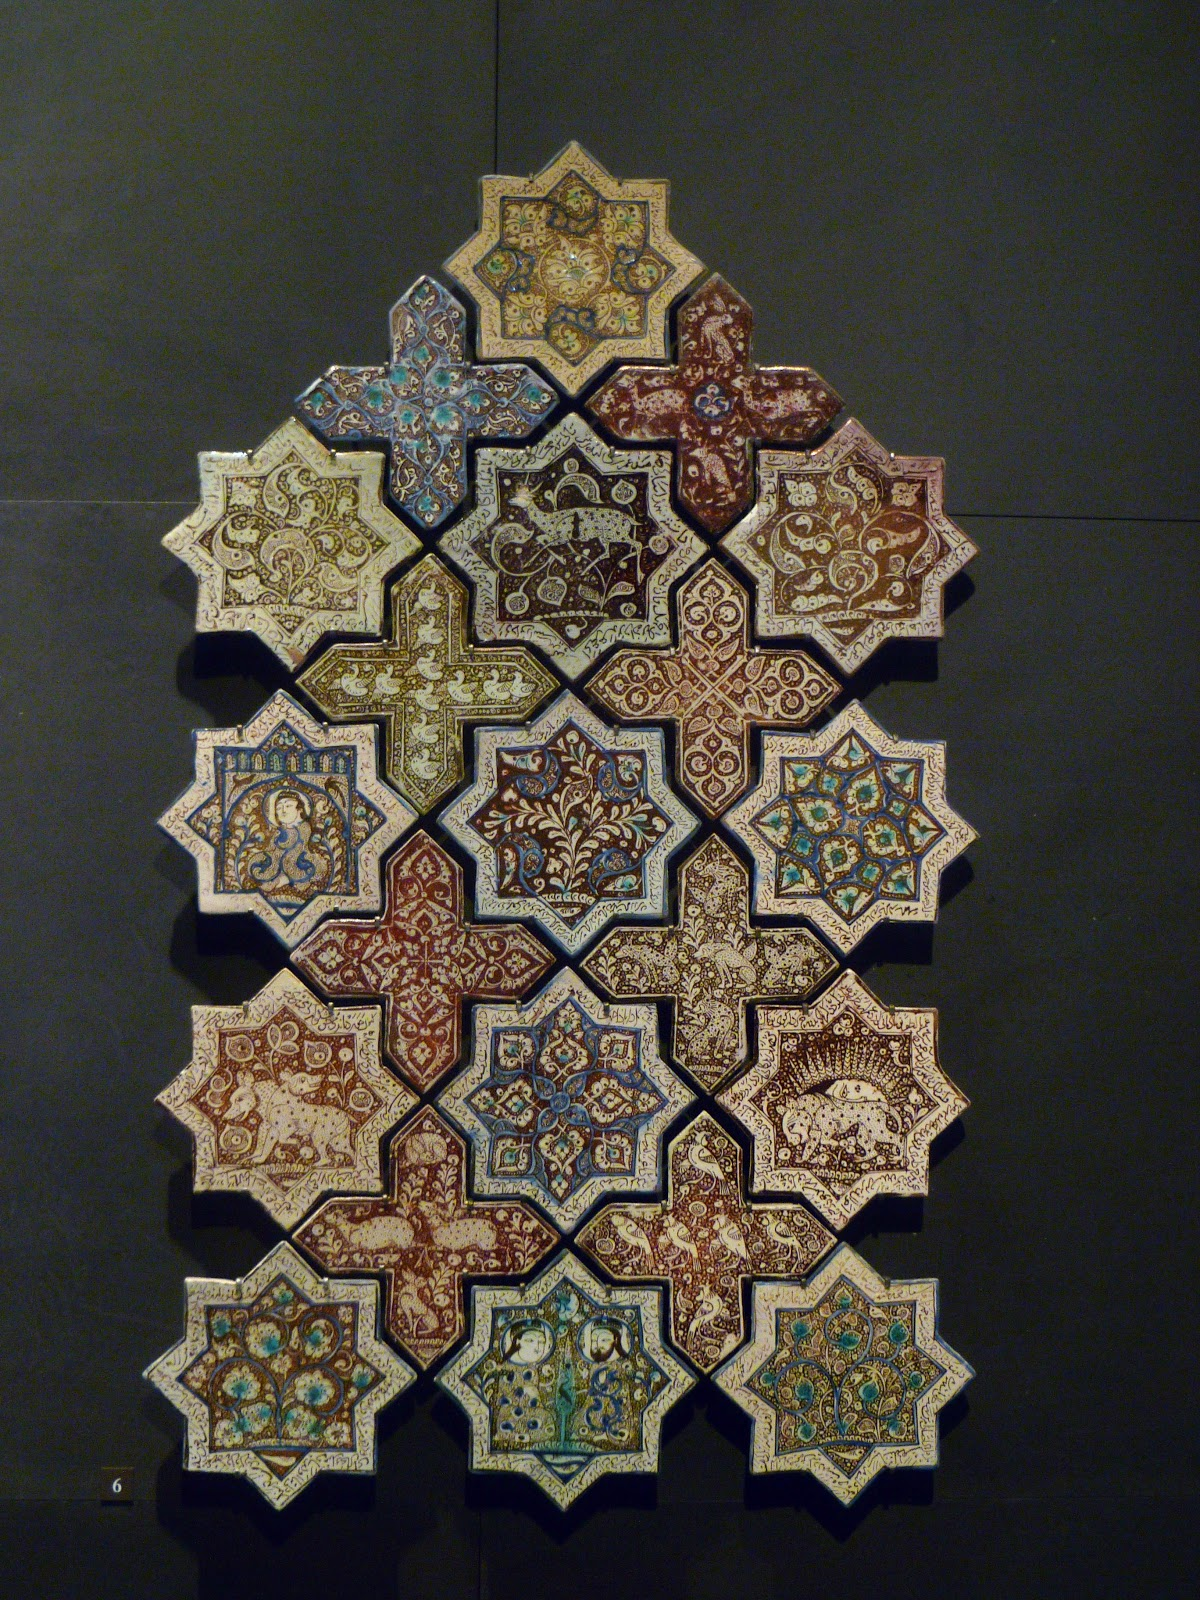 Boomslang Poetry: Islamic Art Galleries, The Louvre